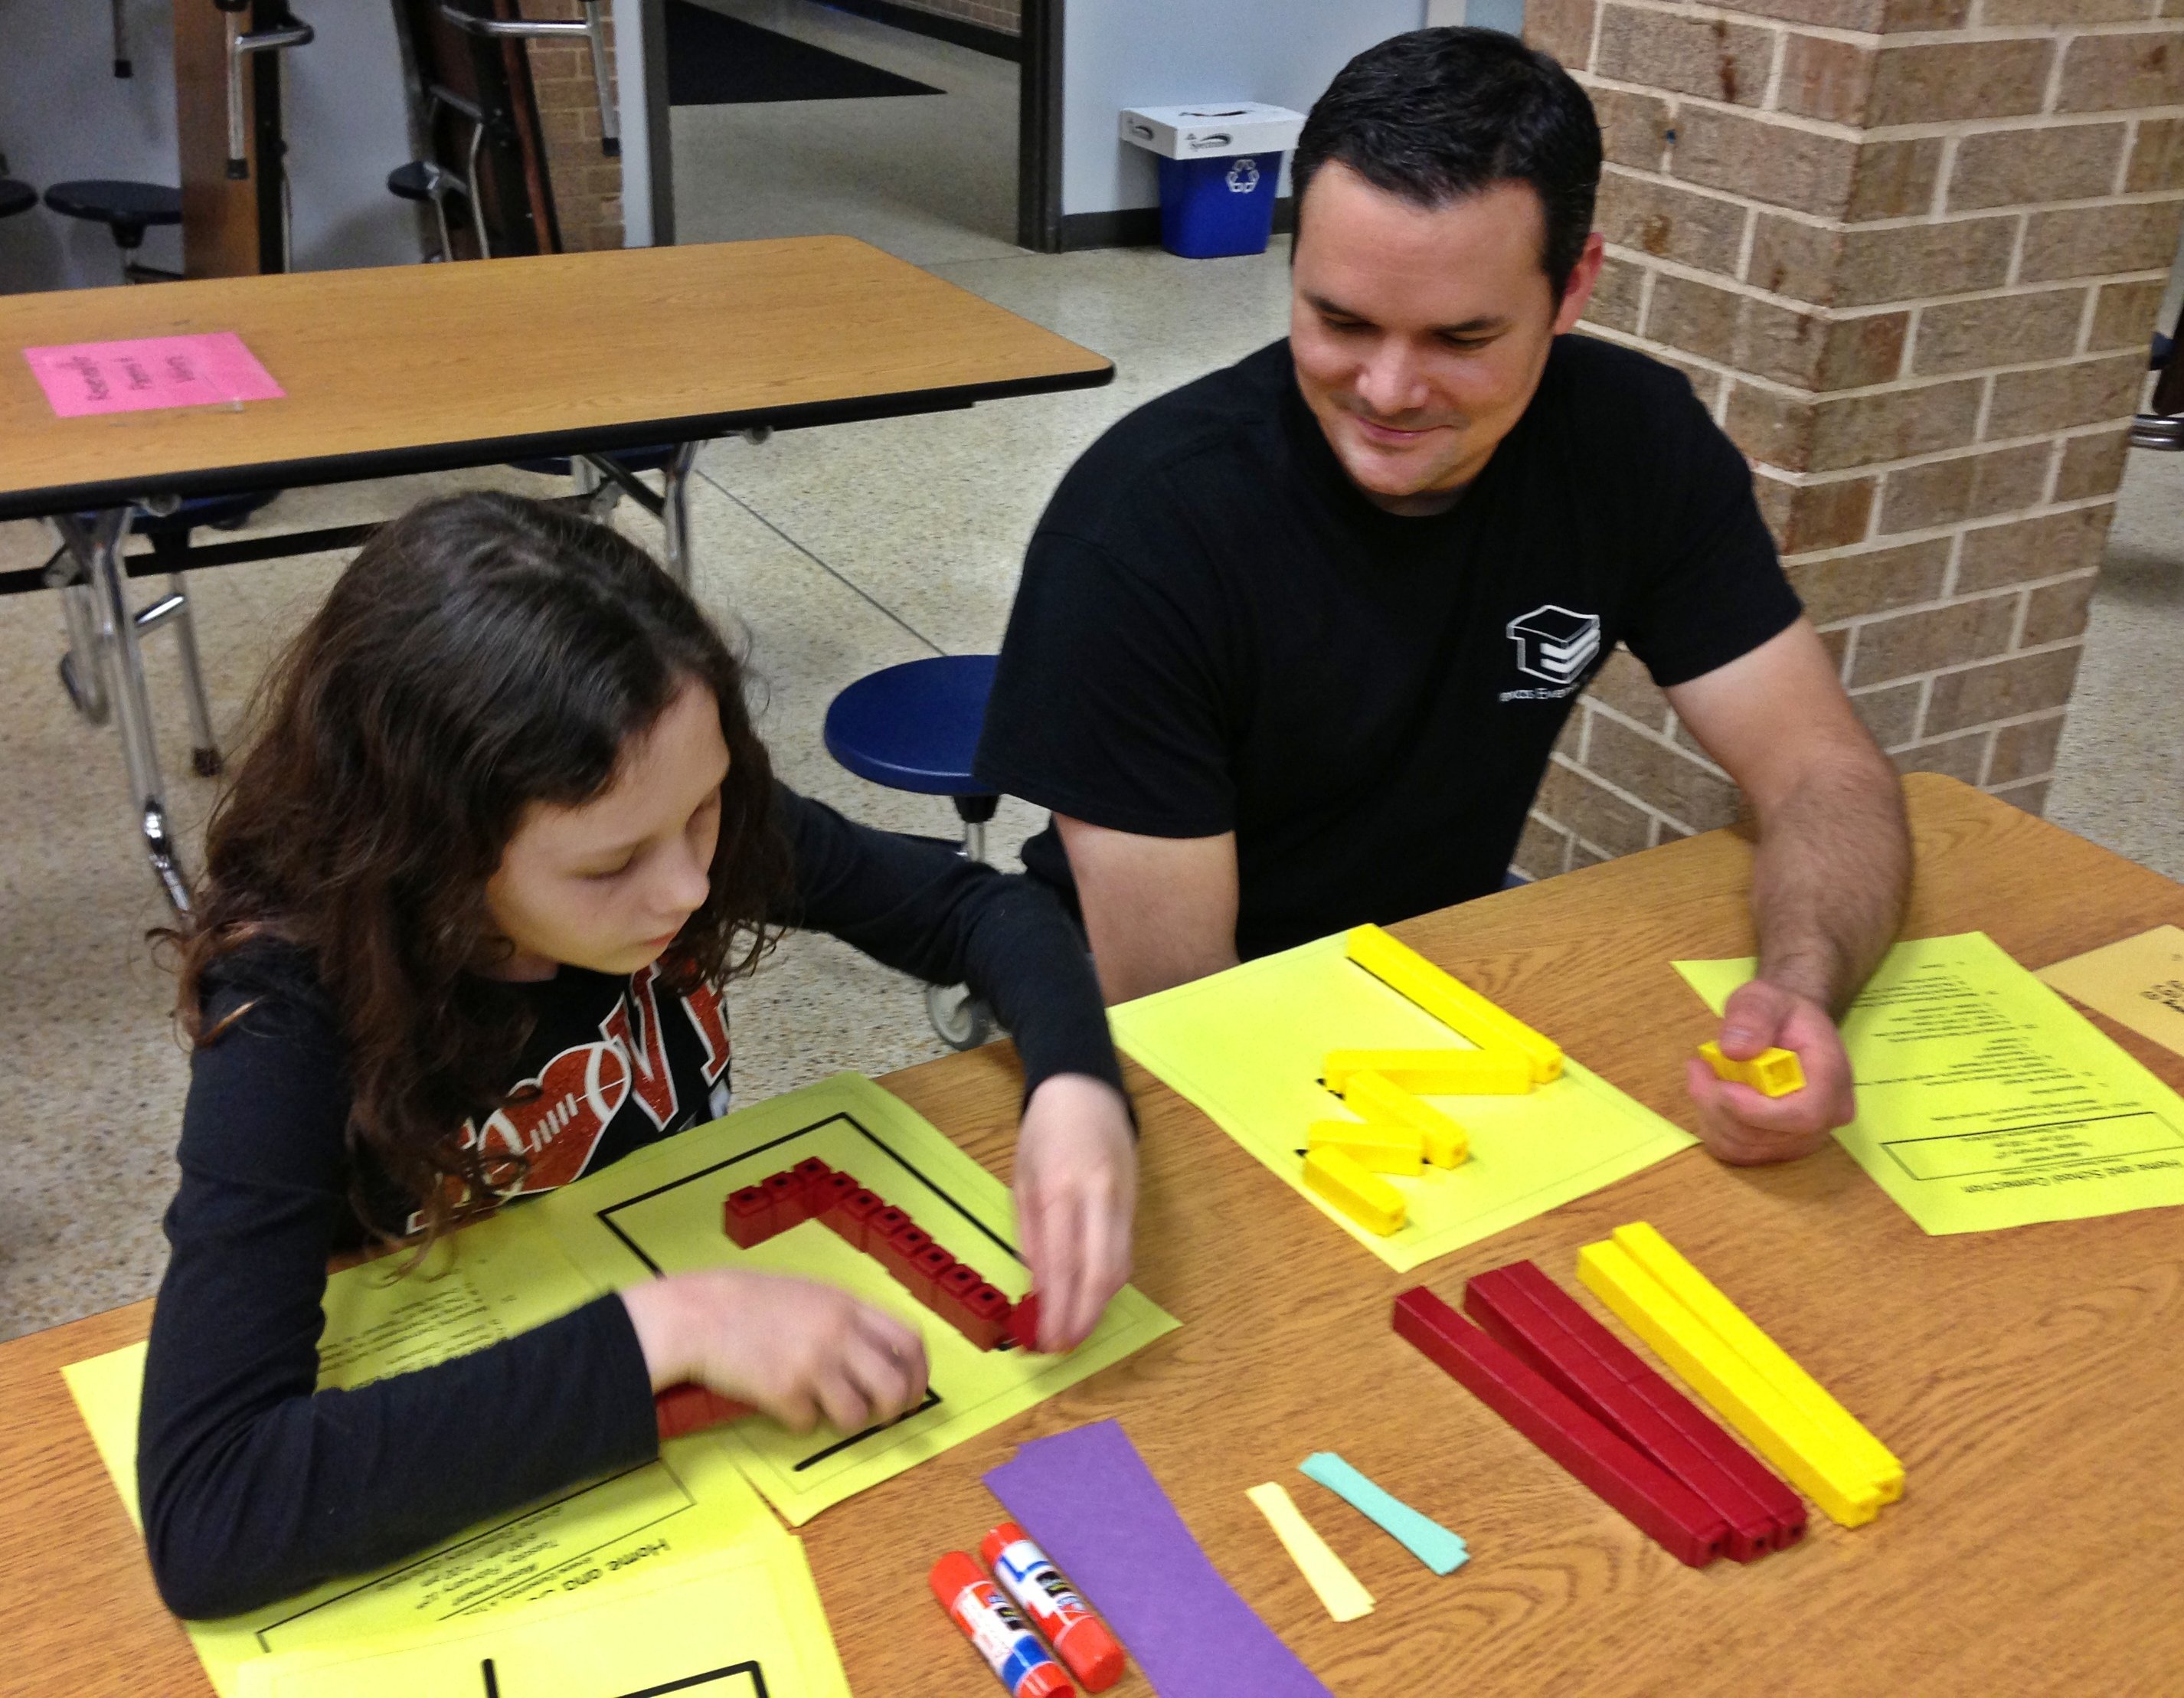 Student and parent working on math task